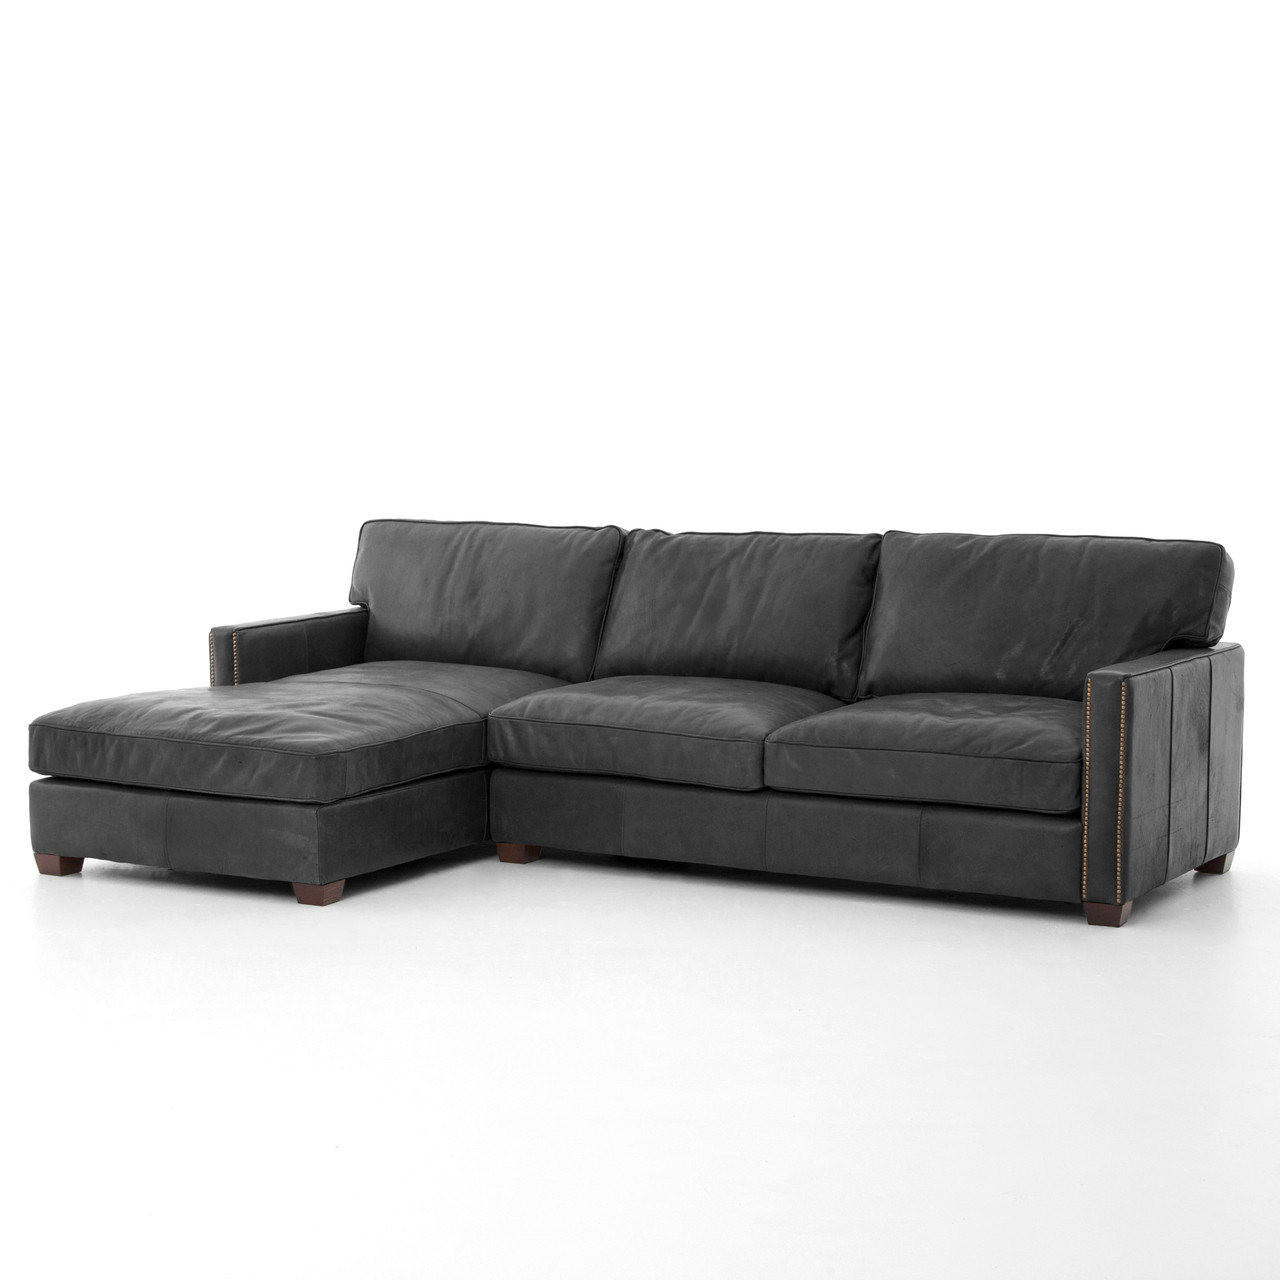 larkin vintage black leather sectional sofa with chaise zin home. Black Bedroom Furniture Sets. Home Design Ideas